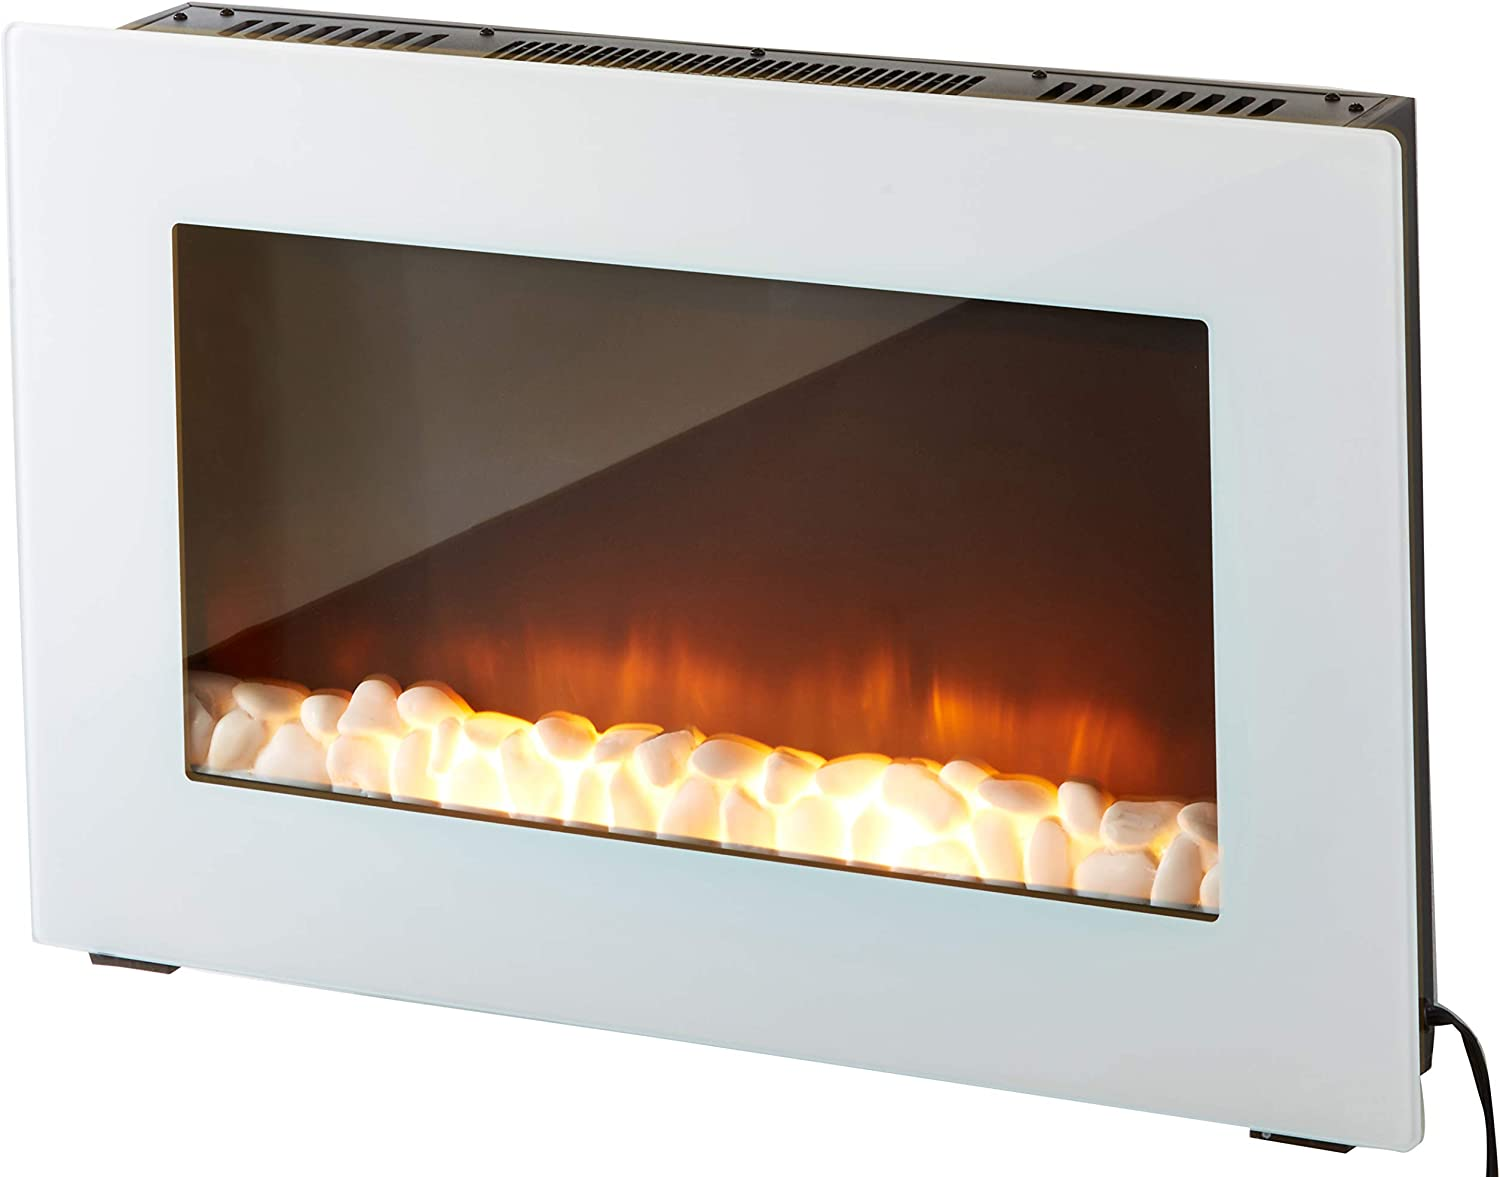 Cambridge Callisto 30 In. Wall-Mount Electric Fireplace in White with Crystal Rock Display